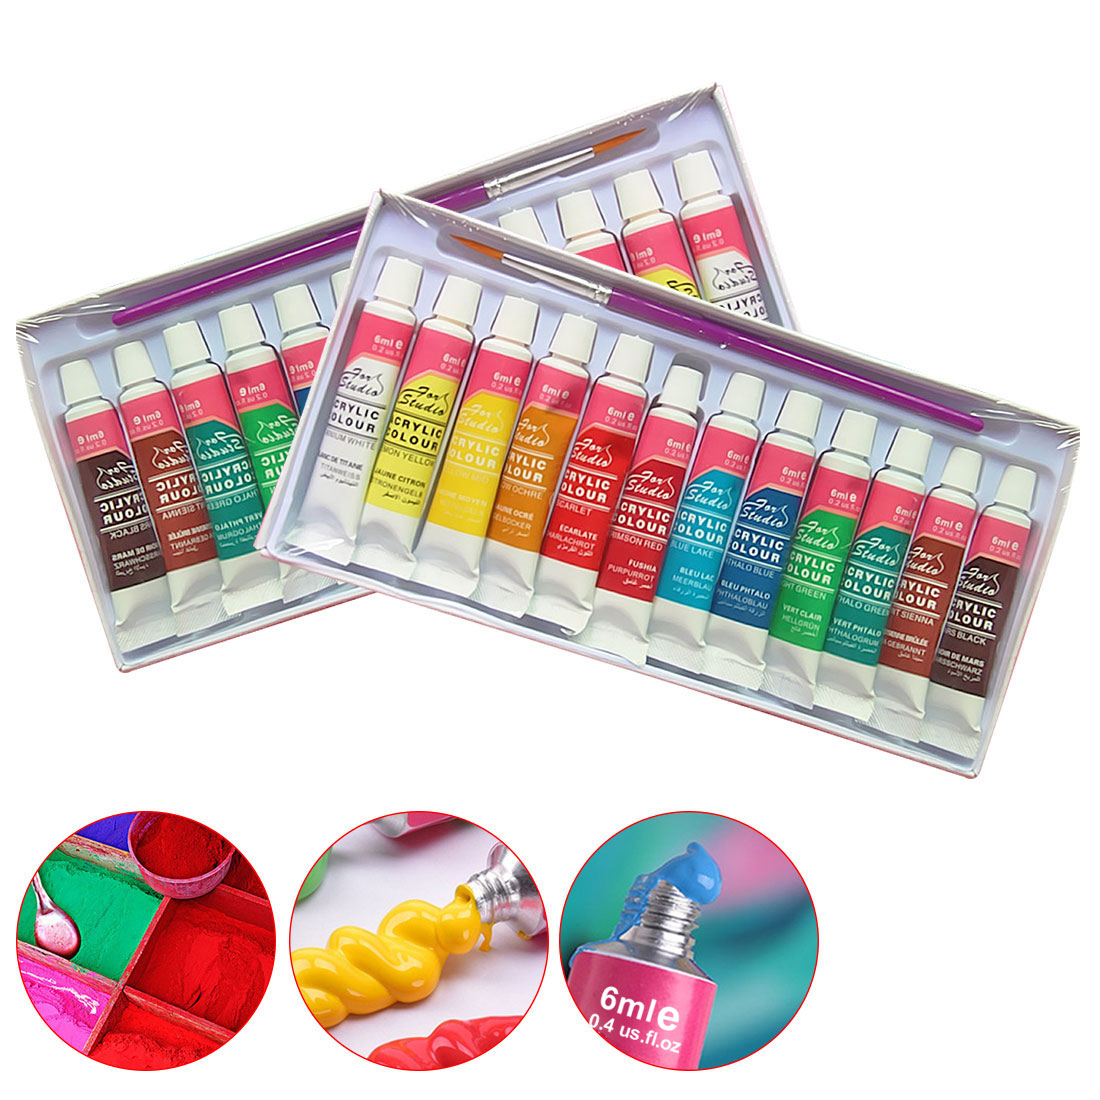 Professional Acrylic Paints For Hand-draw Clothing 12 Colors Acrylic Pigment Hand Painted For Textile Fabric Wall Stone Nail